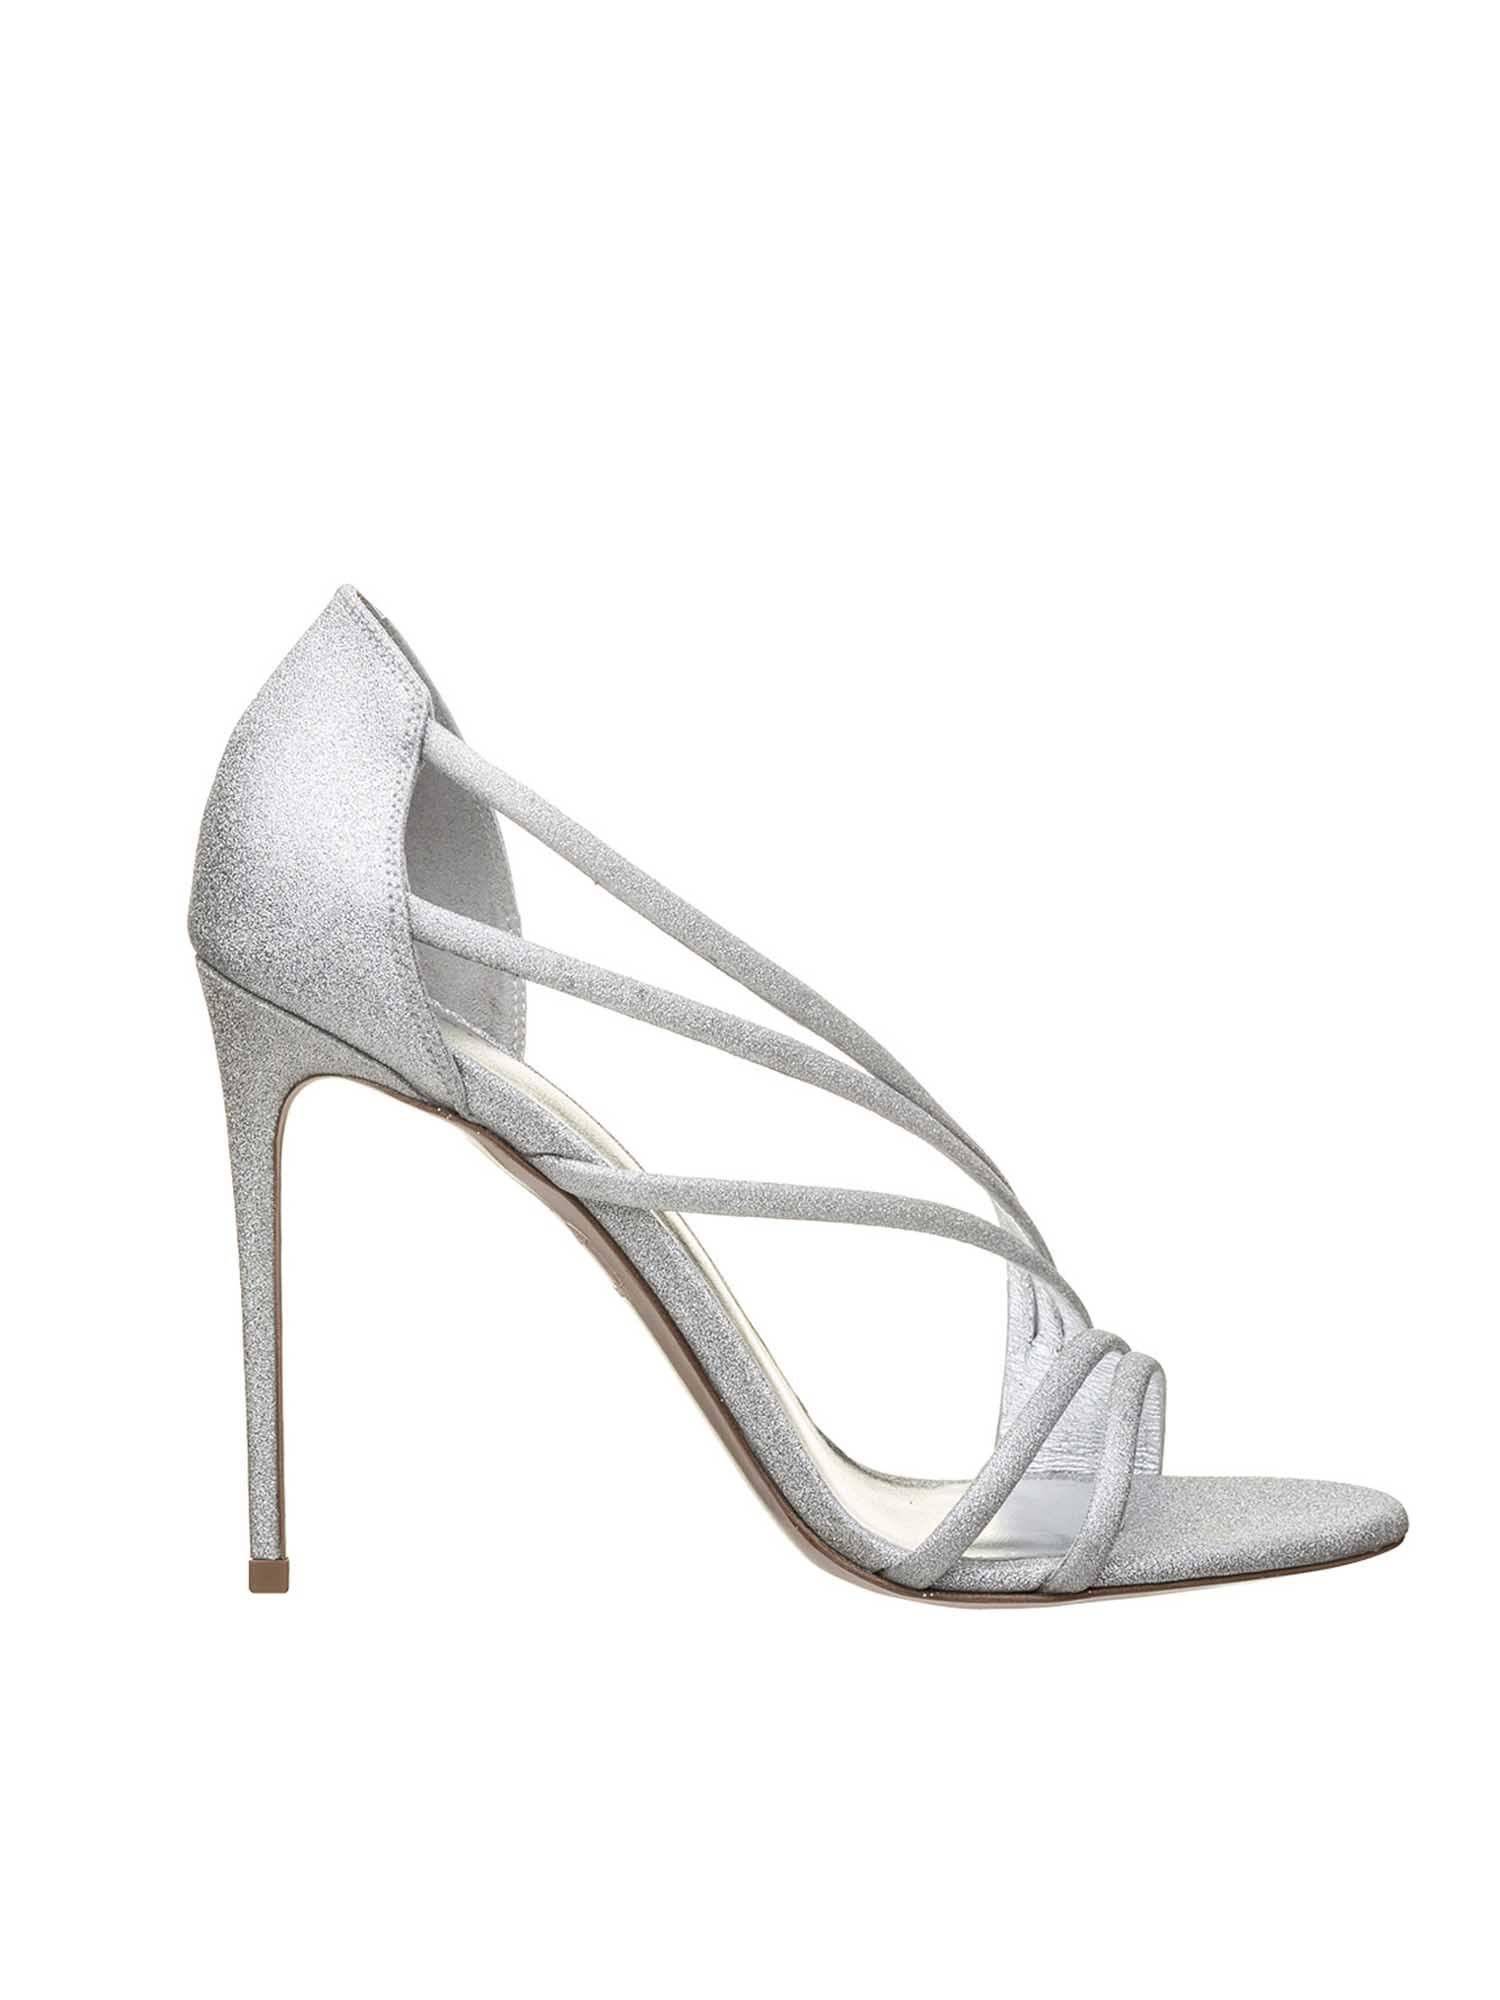 Le Silla SCARLET 120 MM SANDALS IN SILVER